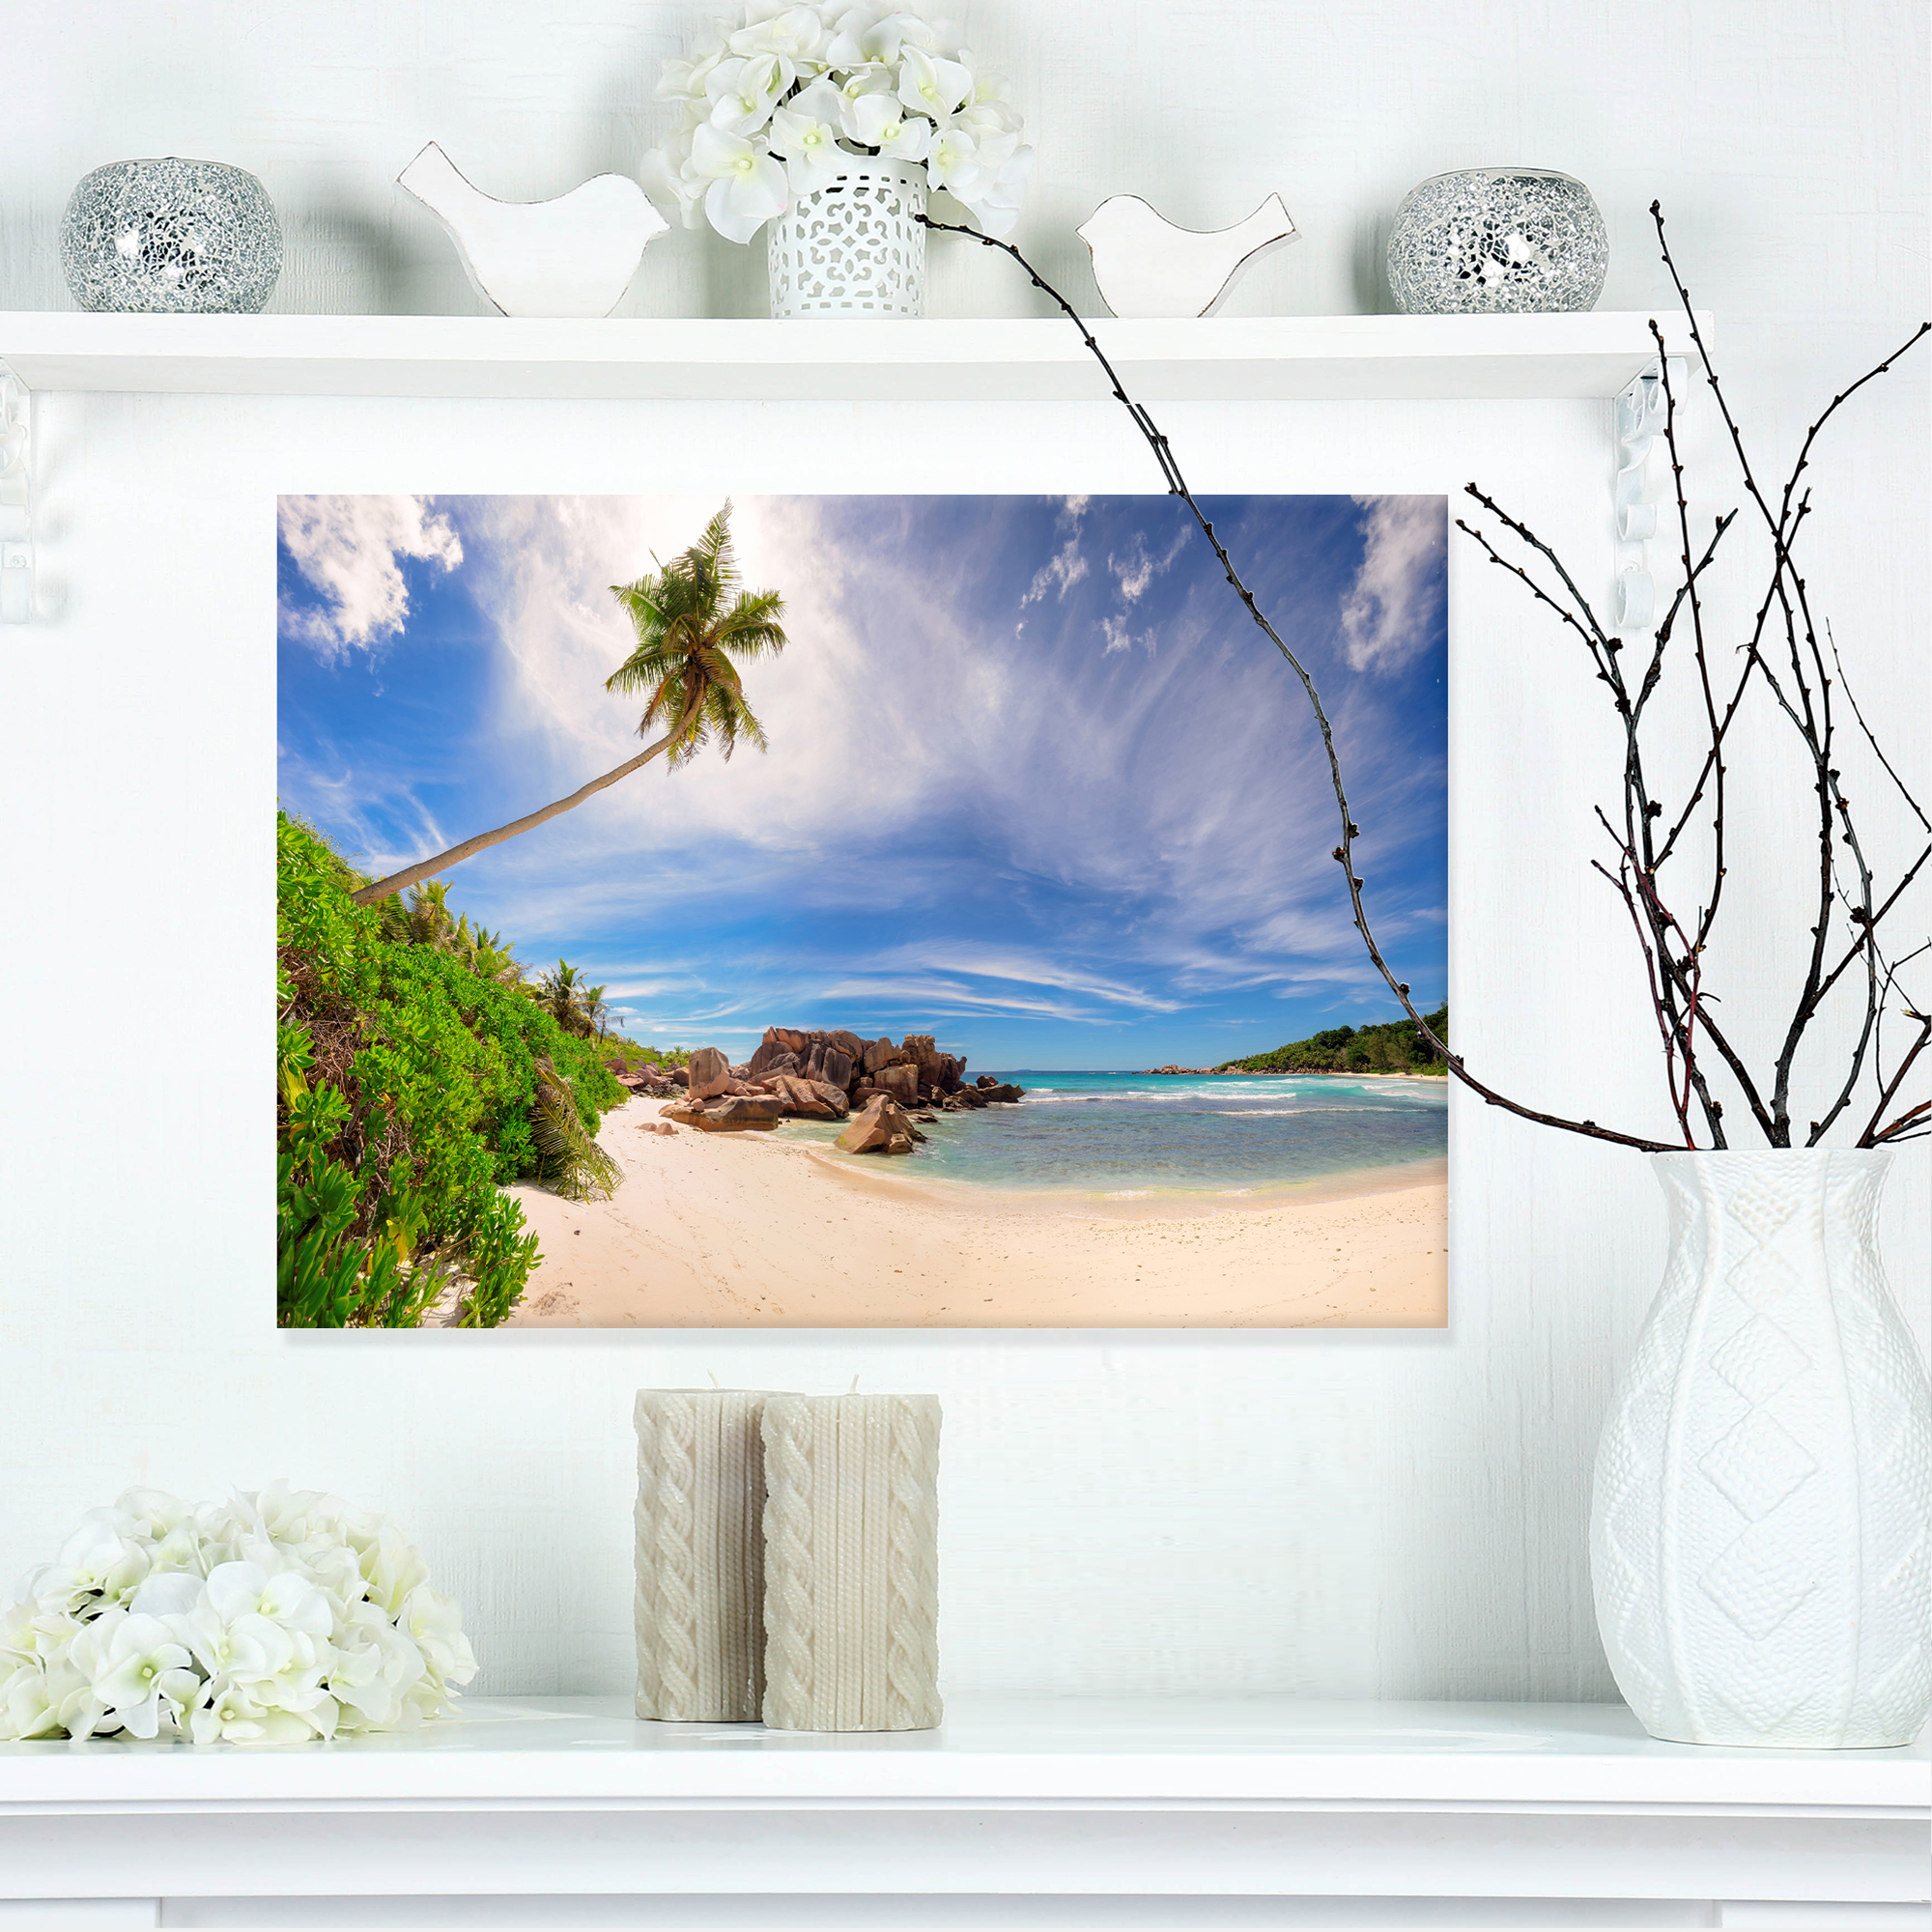 Beautiful Beach at La Digue Seychelles - Large Seashore Canvas Print - image 3 of 3